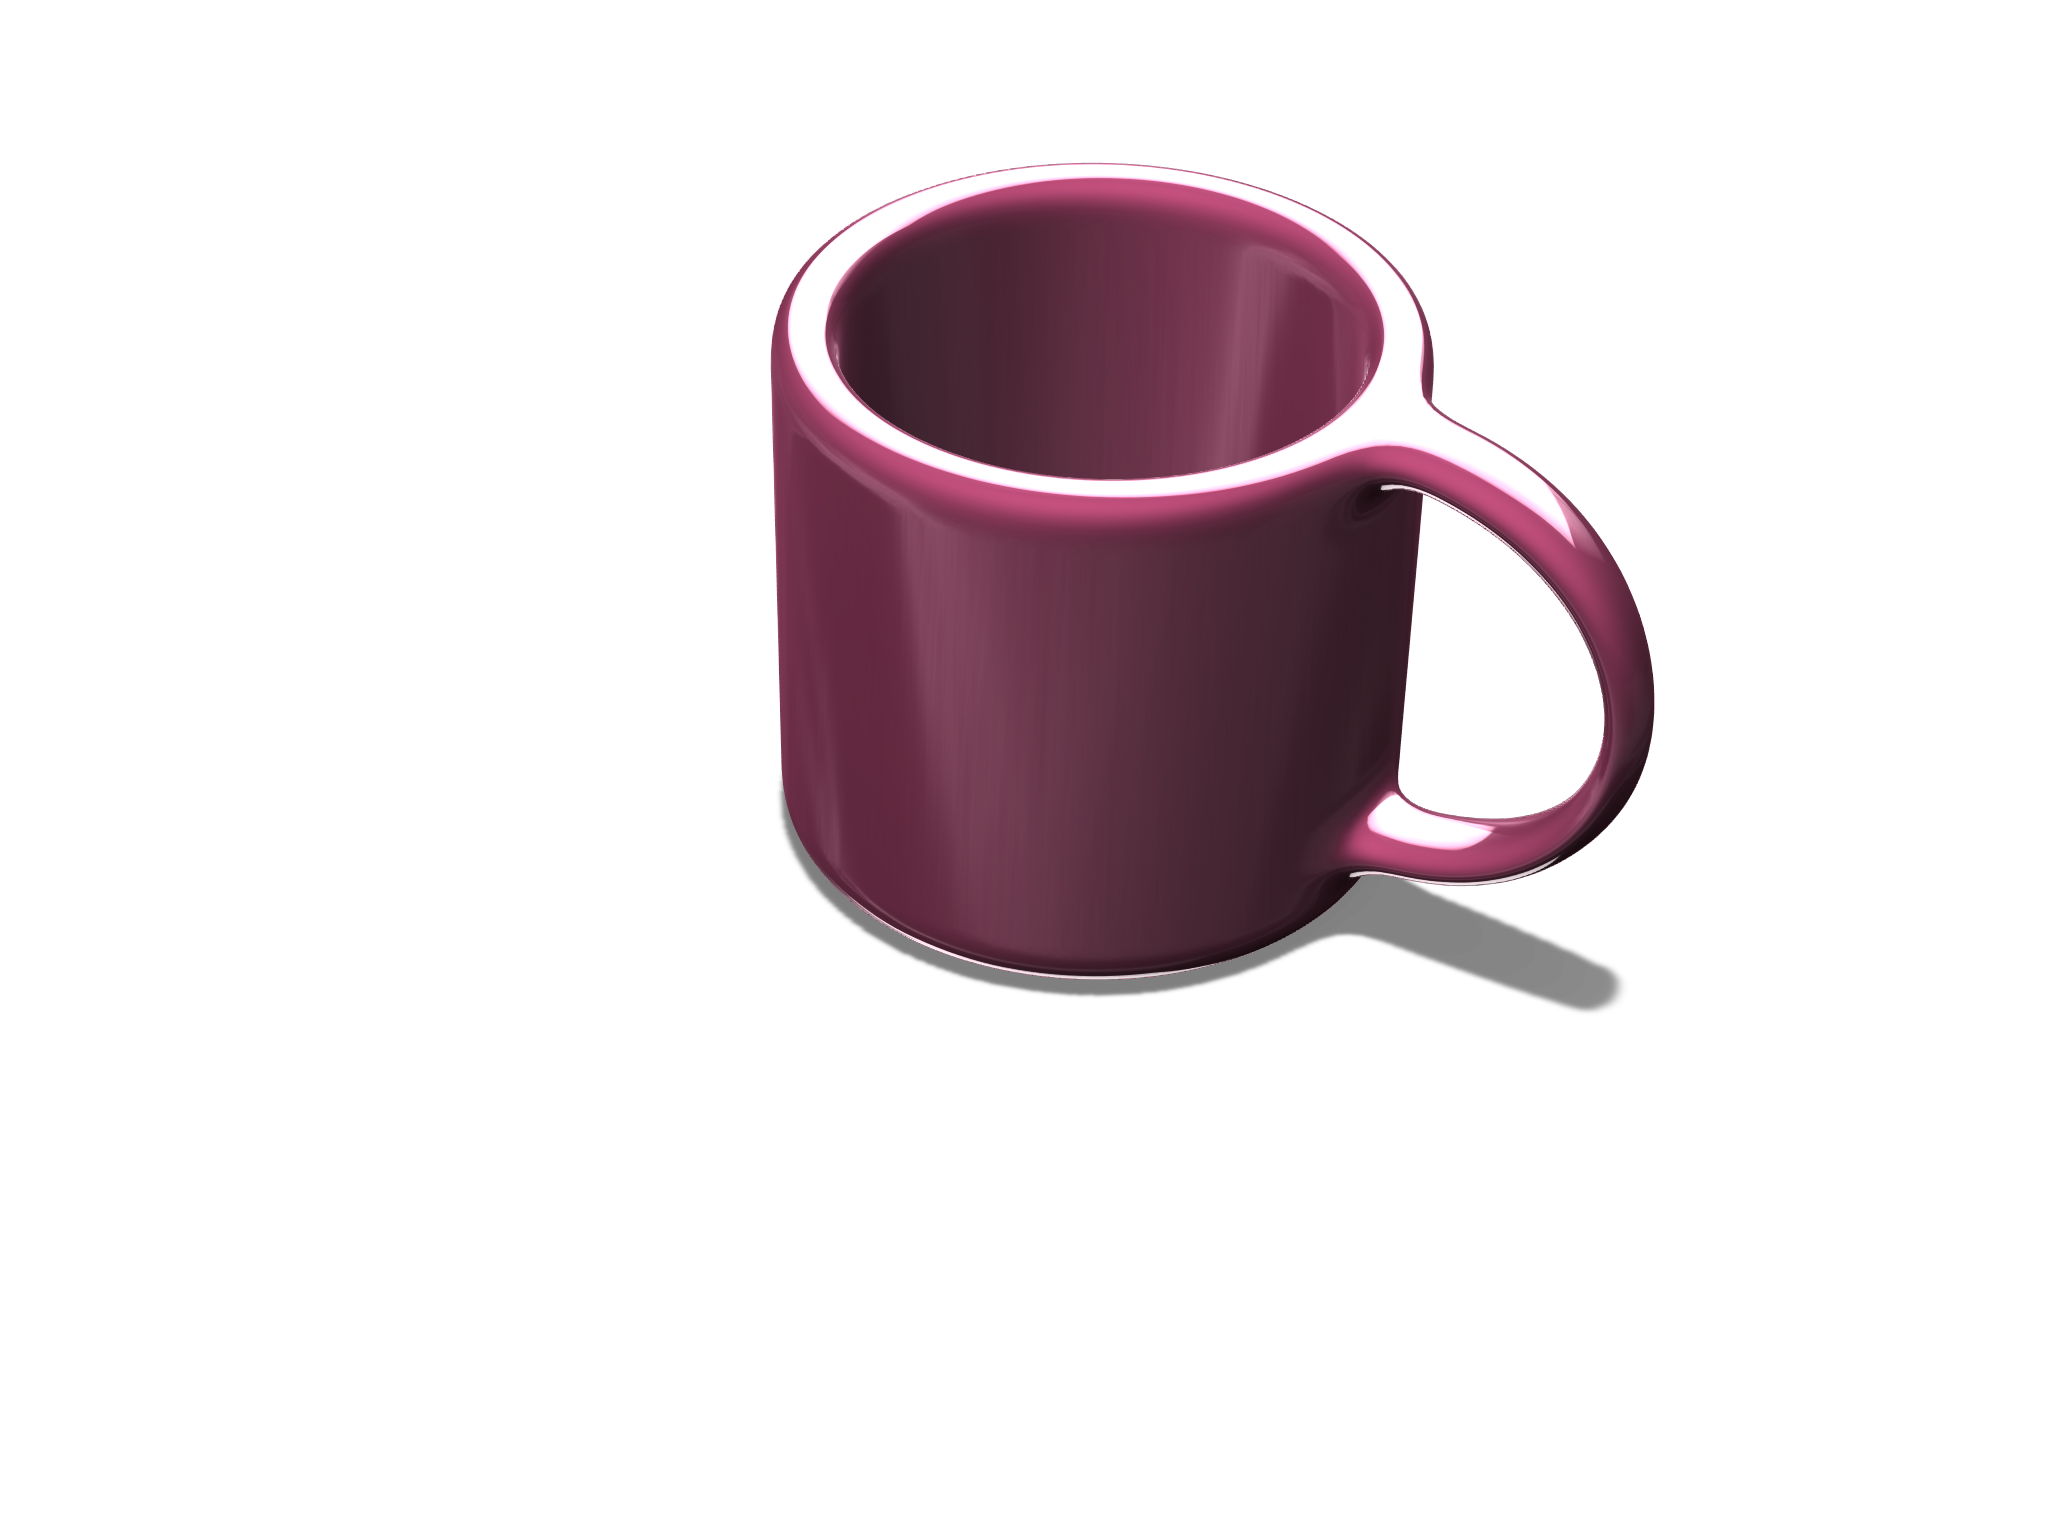 mug - 3D design by nl345052454 Feb 17, 2018